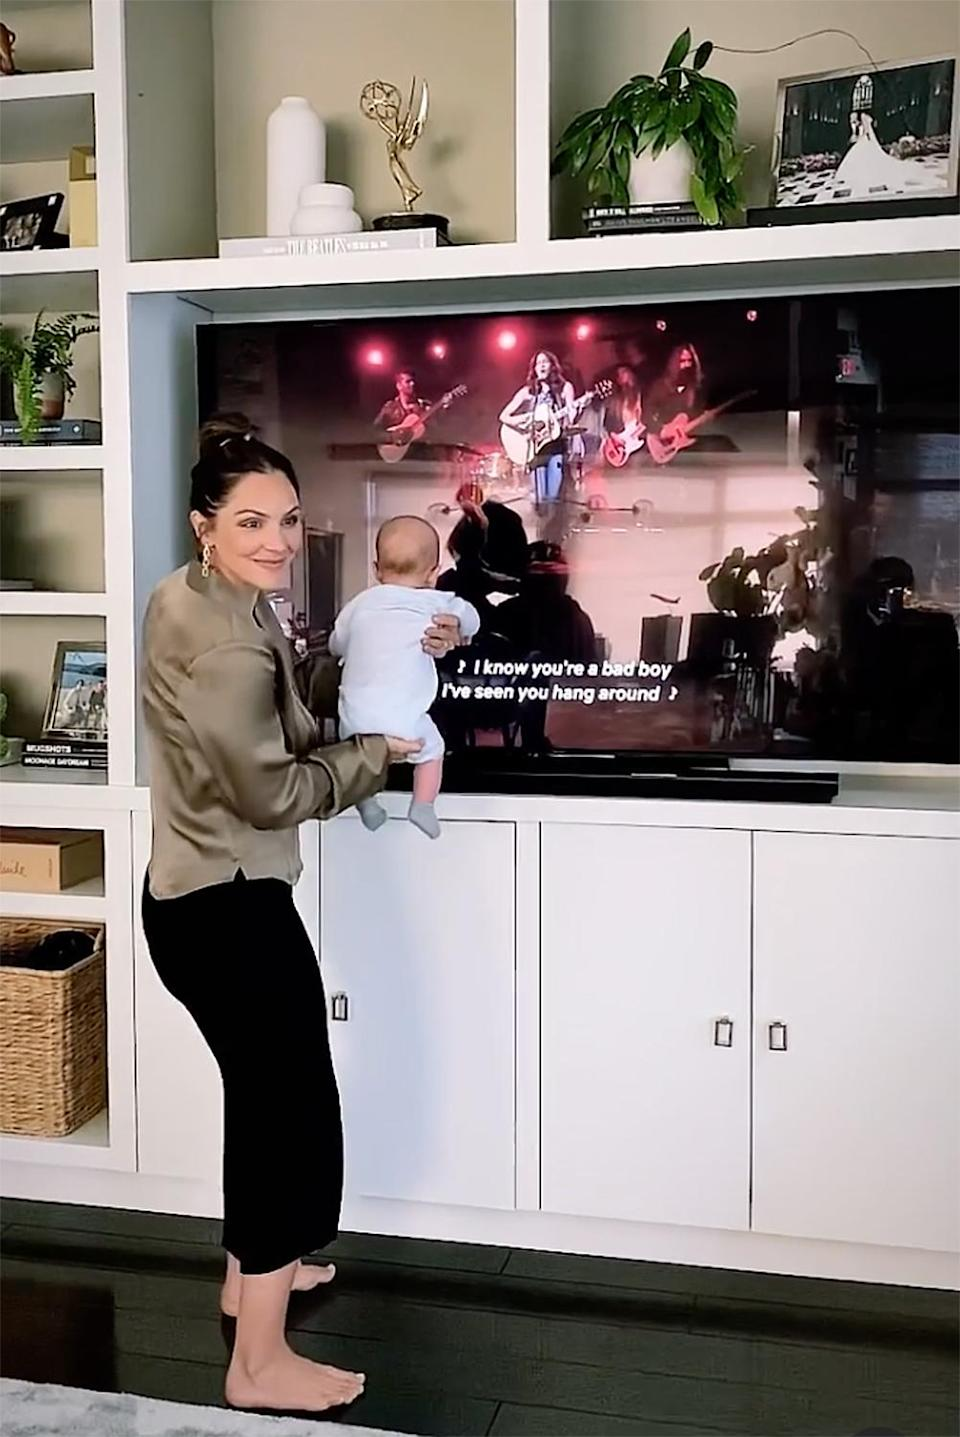 """<p><a href=""""https://people.com/tag/katharine-mcphee/"""" rel=""""nofollow noopener"""" target=""""_blank"""" data-ylk=""""slk:Katharine McPhee"""" class=""""link rapid-noclick-resp""""> Katharine McPhee</a> finds being a new mom comes """"natural"""" to her.</p> <p>The <a href=""""https://people.com/tag/american-idol/"""" rel=""""nofollow noopener"""" target=""""_blank"""" data-ylk=""""slk:American Idol"""" class=""""link rapid-noclick-resp""""><i>American Idol </i></a>alum welcomed newborn son <a href=""""https://people.com/parents/katharine-mcphee-welcomes-first-child-husband-david-foster-son/"""" rel=""""nofollow noopener"""" target=""""_blank"""" data-ylk=""""slk:Rennie David"""" class=""""link rapid-noclick-resp"""">Rennie David</a> with husband David Foster in February. </p> <p>""""It just feels so natural,""""McPhee <a href=""""https://people.com/parents/katharine-mcphee-motherhood-greatest-job-will-ever-have/"""" rel=""""nofollow noopener"""" target=""""_blank"""" data-ylk=""""slk:told PEOPLE in April"""" class=""""link rapid-noclick-resp"""">told PEOPLE in April</a>. """"I've <a href=""""https://people.com/parents/katharine-mcphee-david-foster-reveals-newborn-baby-son-name/"""" rel=""""nofollow noopener"""" target=""""_blank"""" data-ylk=""""slk:had a really good baby"""" class=""""link rapid-noclick-resp"""">had a really good baby</a>; he's been so good. I'm so in love!""""</p> <p>The singer added, """"I'm a little bit tired here and there but I find times to nap... he's such a good little baby and I'm so in love ... It's my greatest job I'll ever have.""""</p> <p>In March, the <em>Country Comfort</em> actress also <a href=""""https://people.com/parents/katharine-mcphee-talks-motherhood-son-rennie-netflix-series-country-comfort-exclusive/"""" rel=""""nofollow noopener"""" target=""""_blank"""" data-ylk=""""slk:opened up to PEOPLE"""" class=""""link rapid-noclick-resp"""">opened up to PEOPLE</a> about loving her mom bod and the happiness of welcoming a new child.</p> <p>""""I thought I would have this pressure [to bounce back] but I've just been so grateful and happy that I've had a healthy baby and I've felt really good, emotionally and physically... I'm s"""